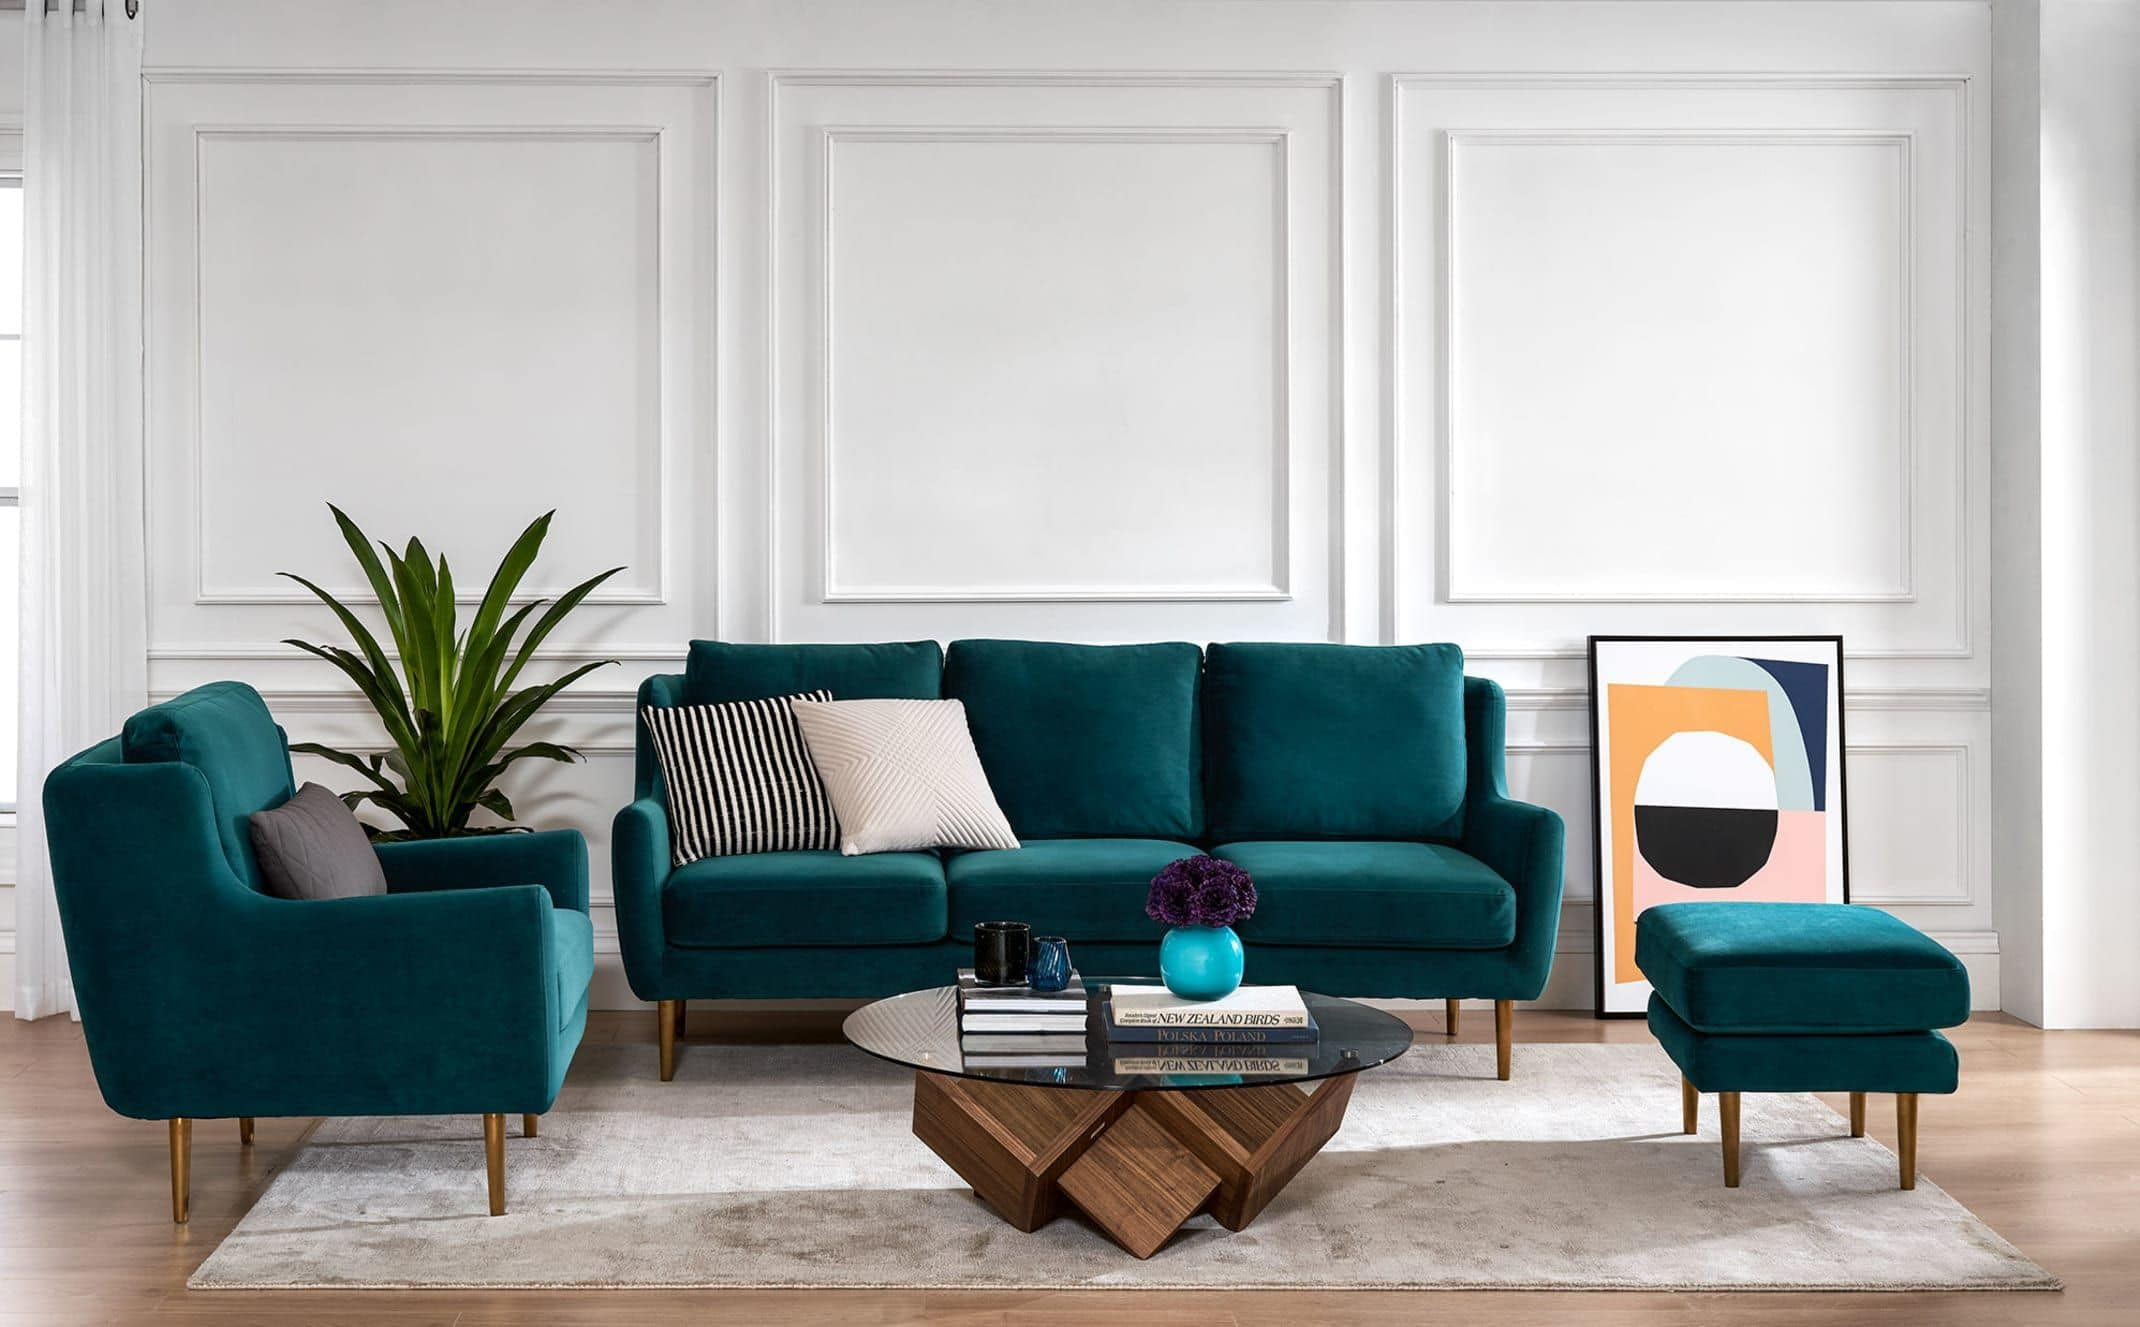 teal velvet sofa with gold legs in living room